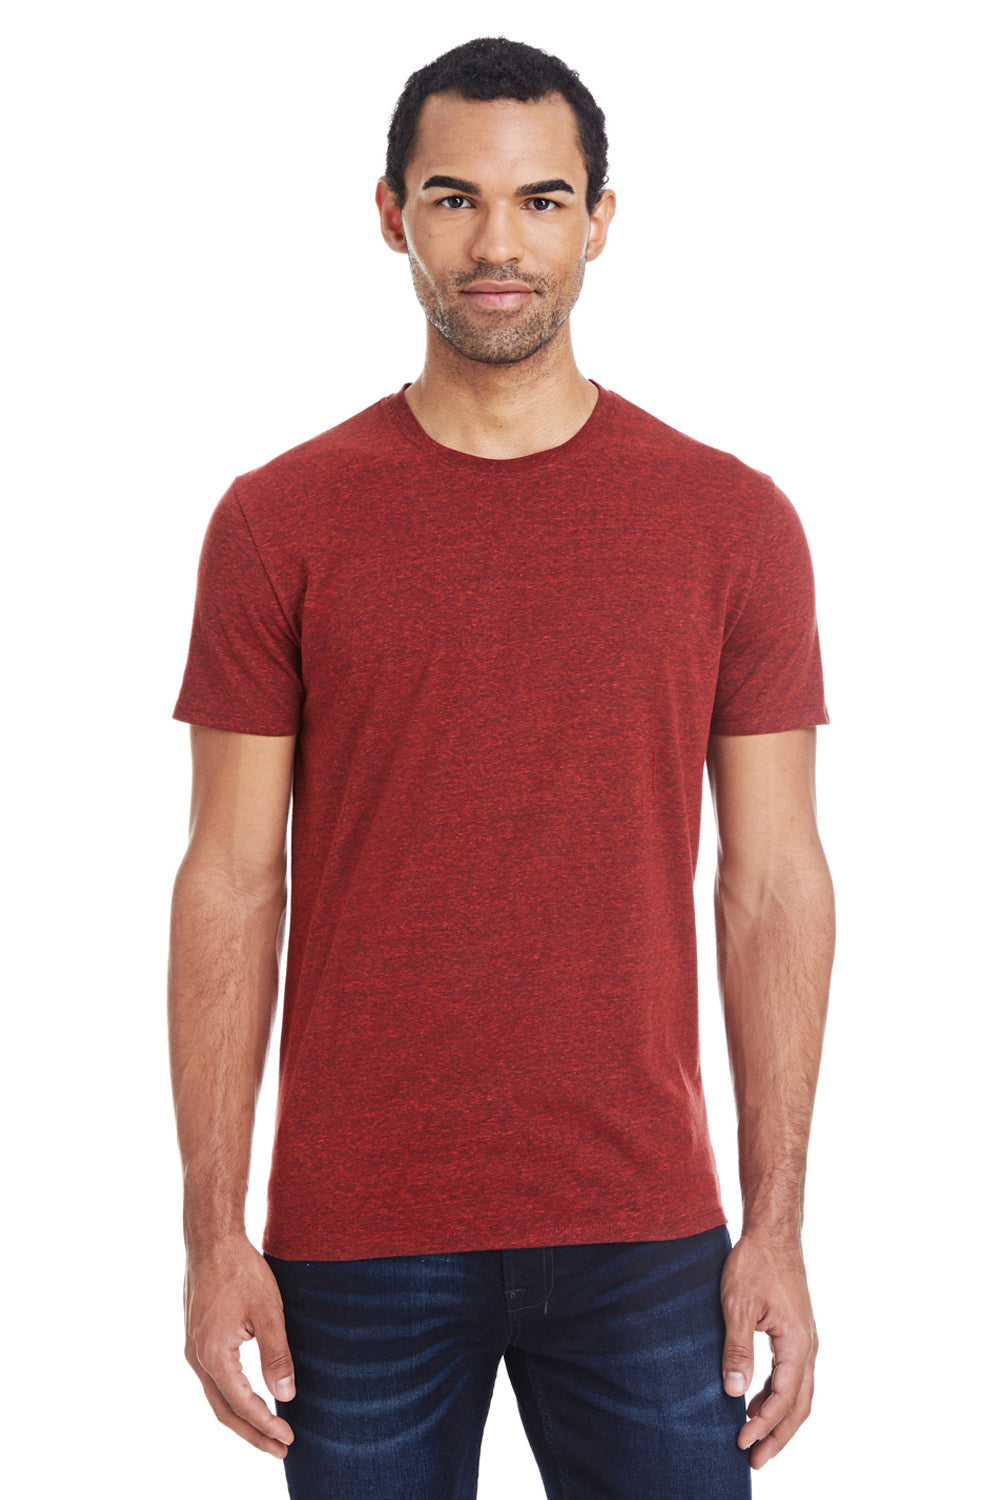 Threadfast Apparel 102A Mens Short Sleeve Crewneck T-Shirt Cardinal Red Front